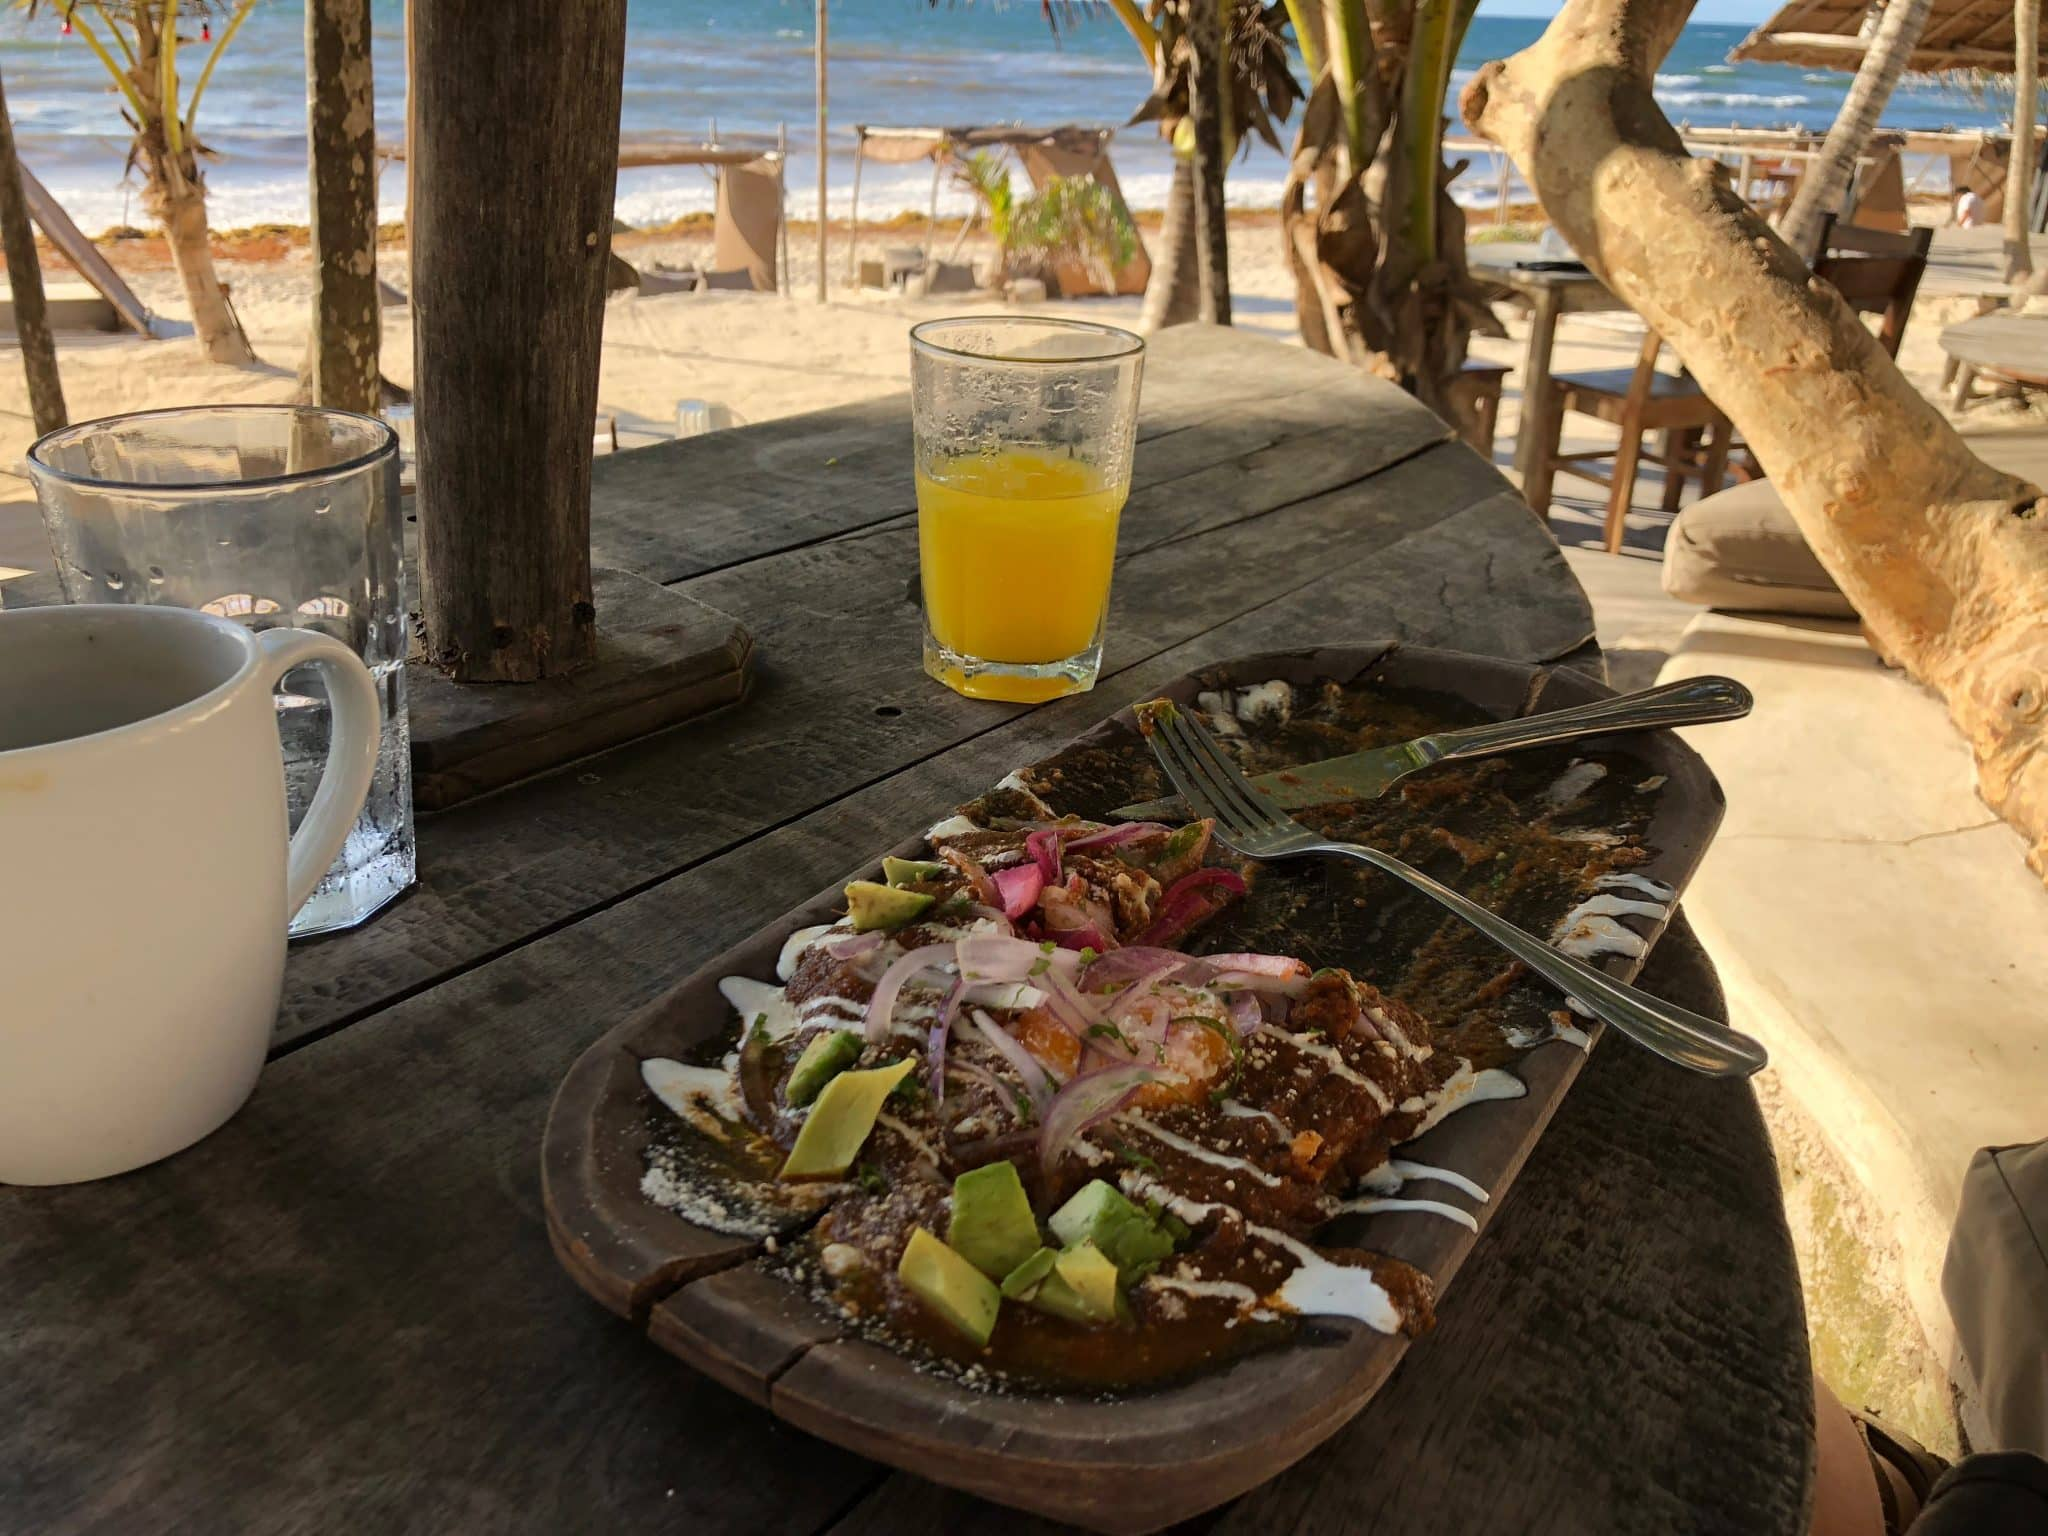 yucatan-breakfast-at-artists-colony-on-tulum-beach